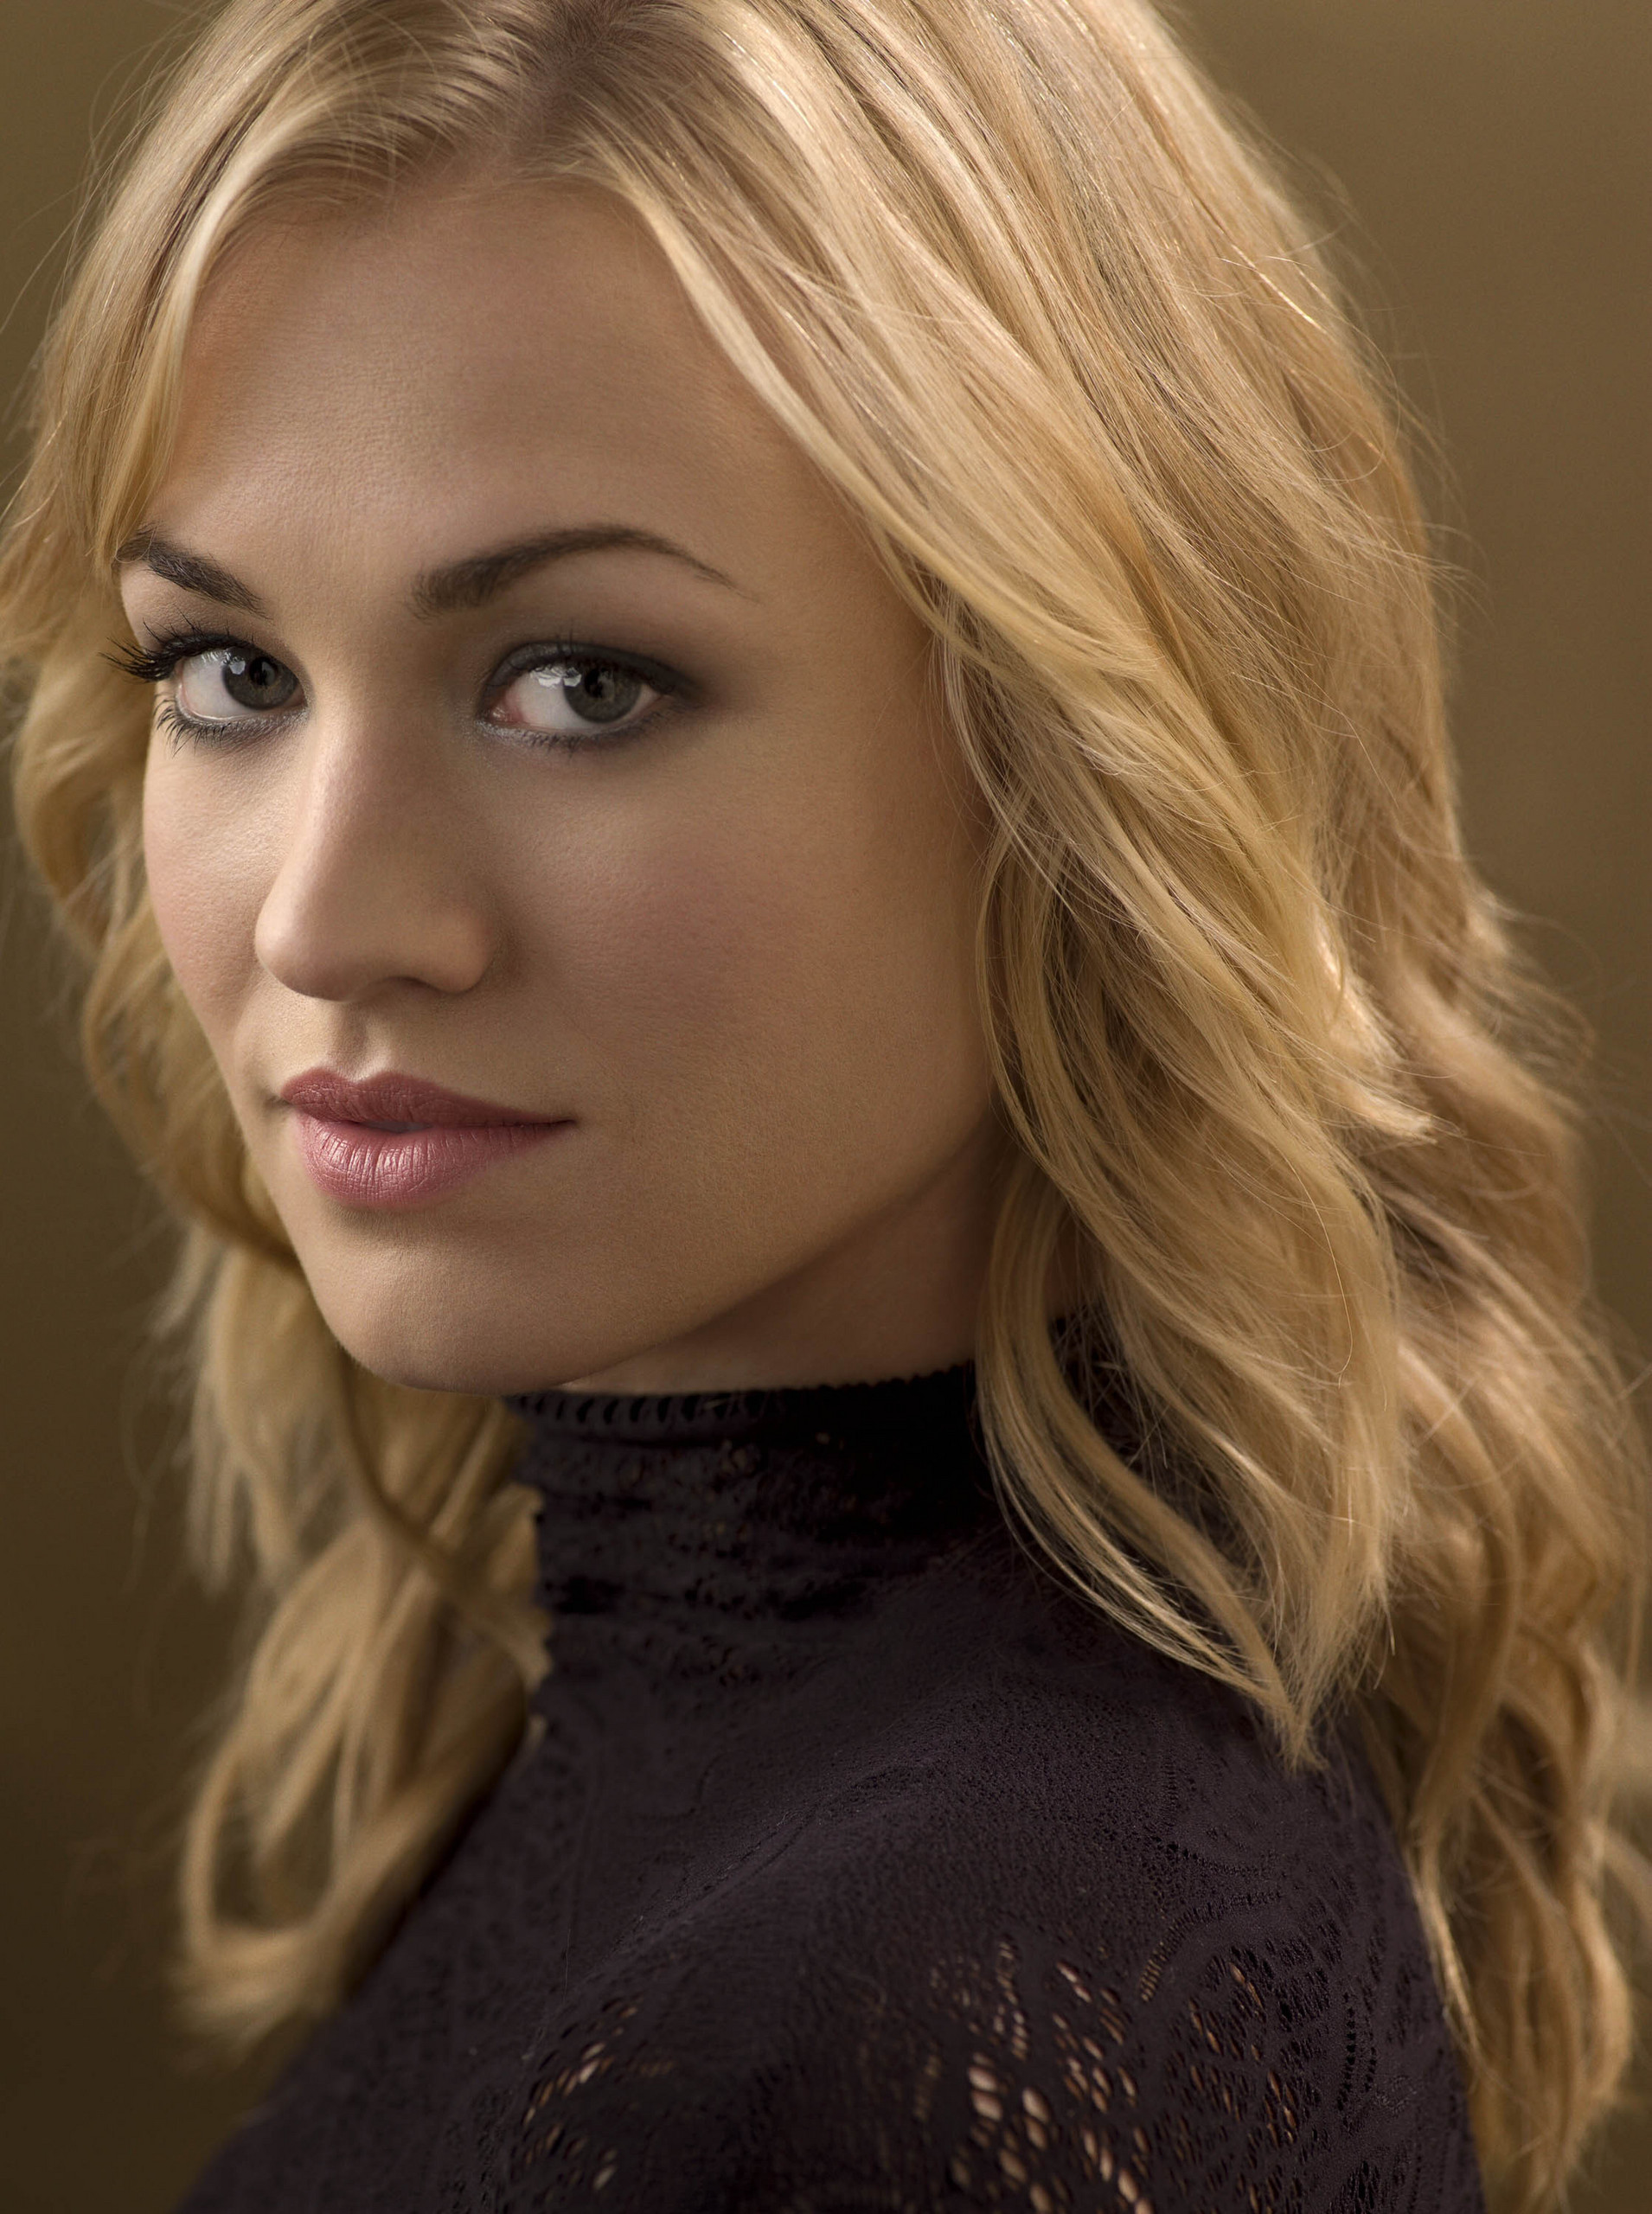 Yvonne Strahovski - Wallpaper Colection